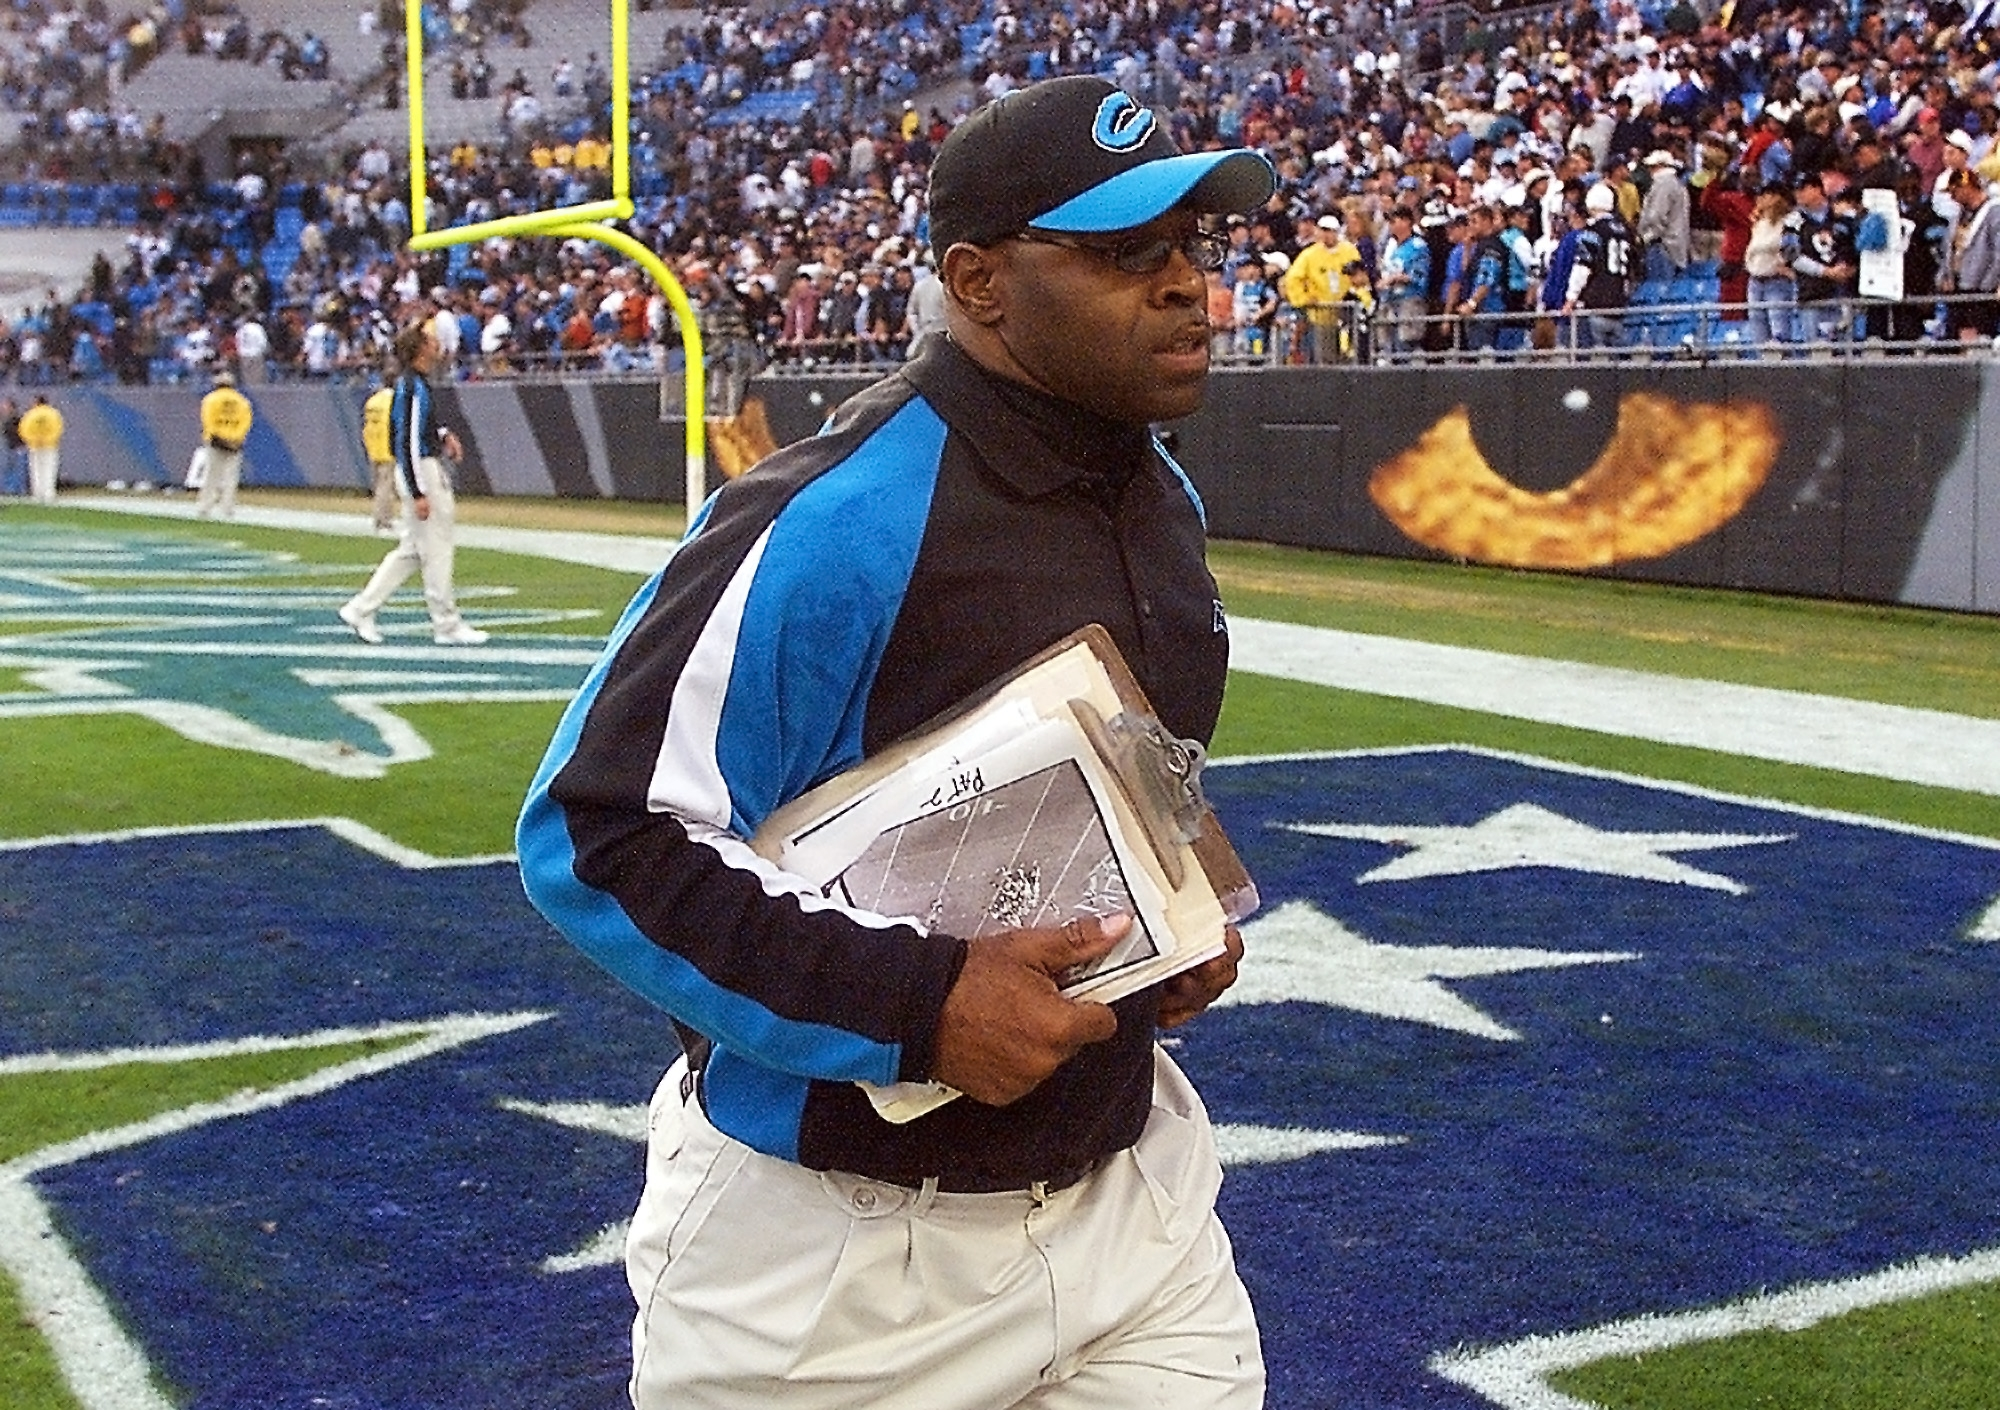 FILE - In this Nov. 16, 2003, file photo, Carolina Panthers linebackers coach Sam Mills leaves the field after the Panthers' game against the Washington Redskins in Charlotte, N.C. The Panthers motto is everywhere, on stadium walls, plaques and even the t